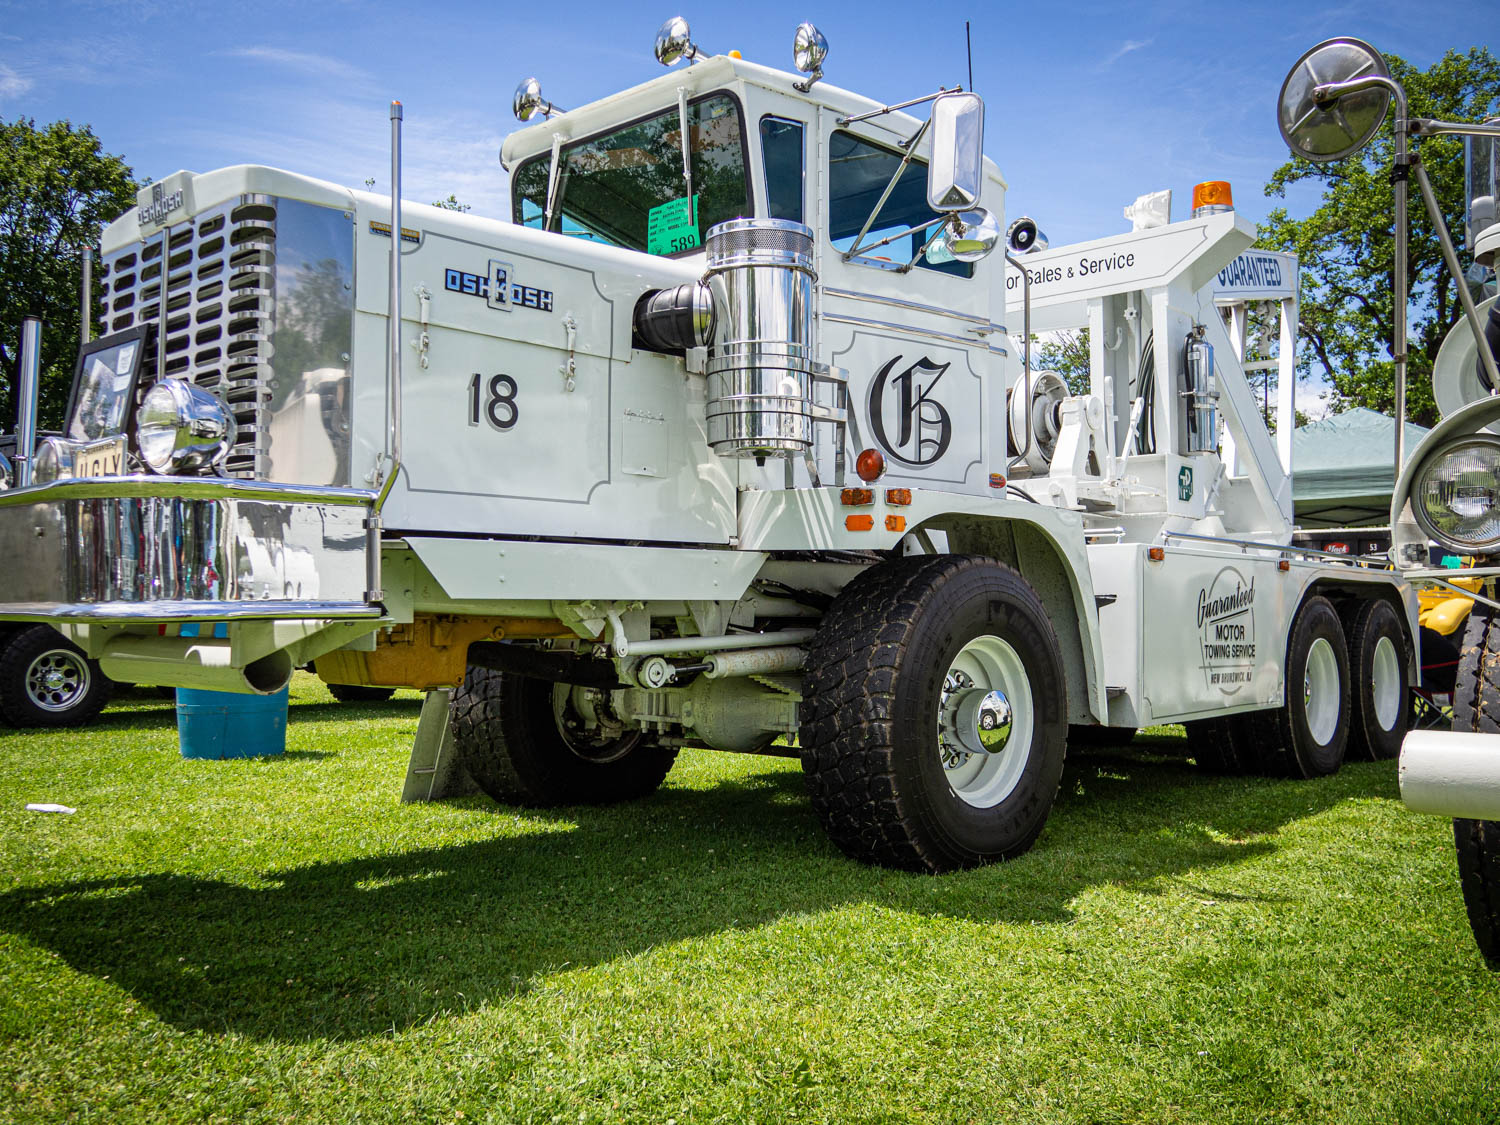 This 1970 Oshkosh C2044 wrecker with a front axle set back just about as far as you can set an axle back has an apt vanity plate: UGLY.